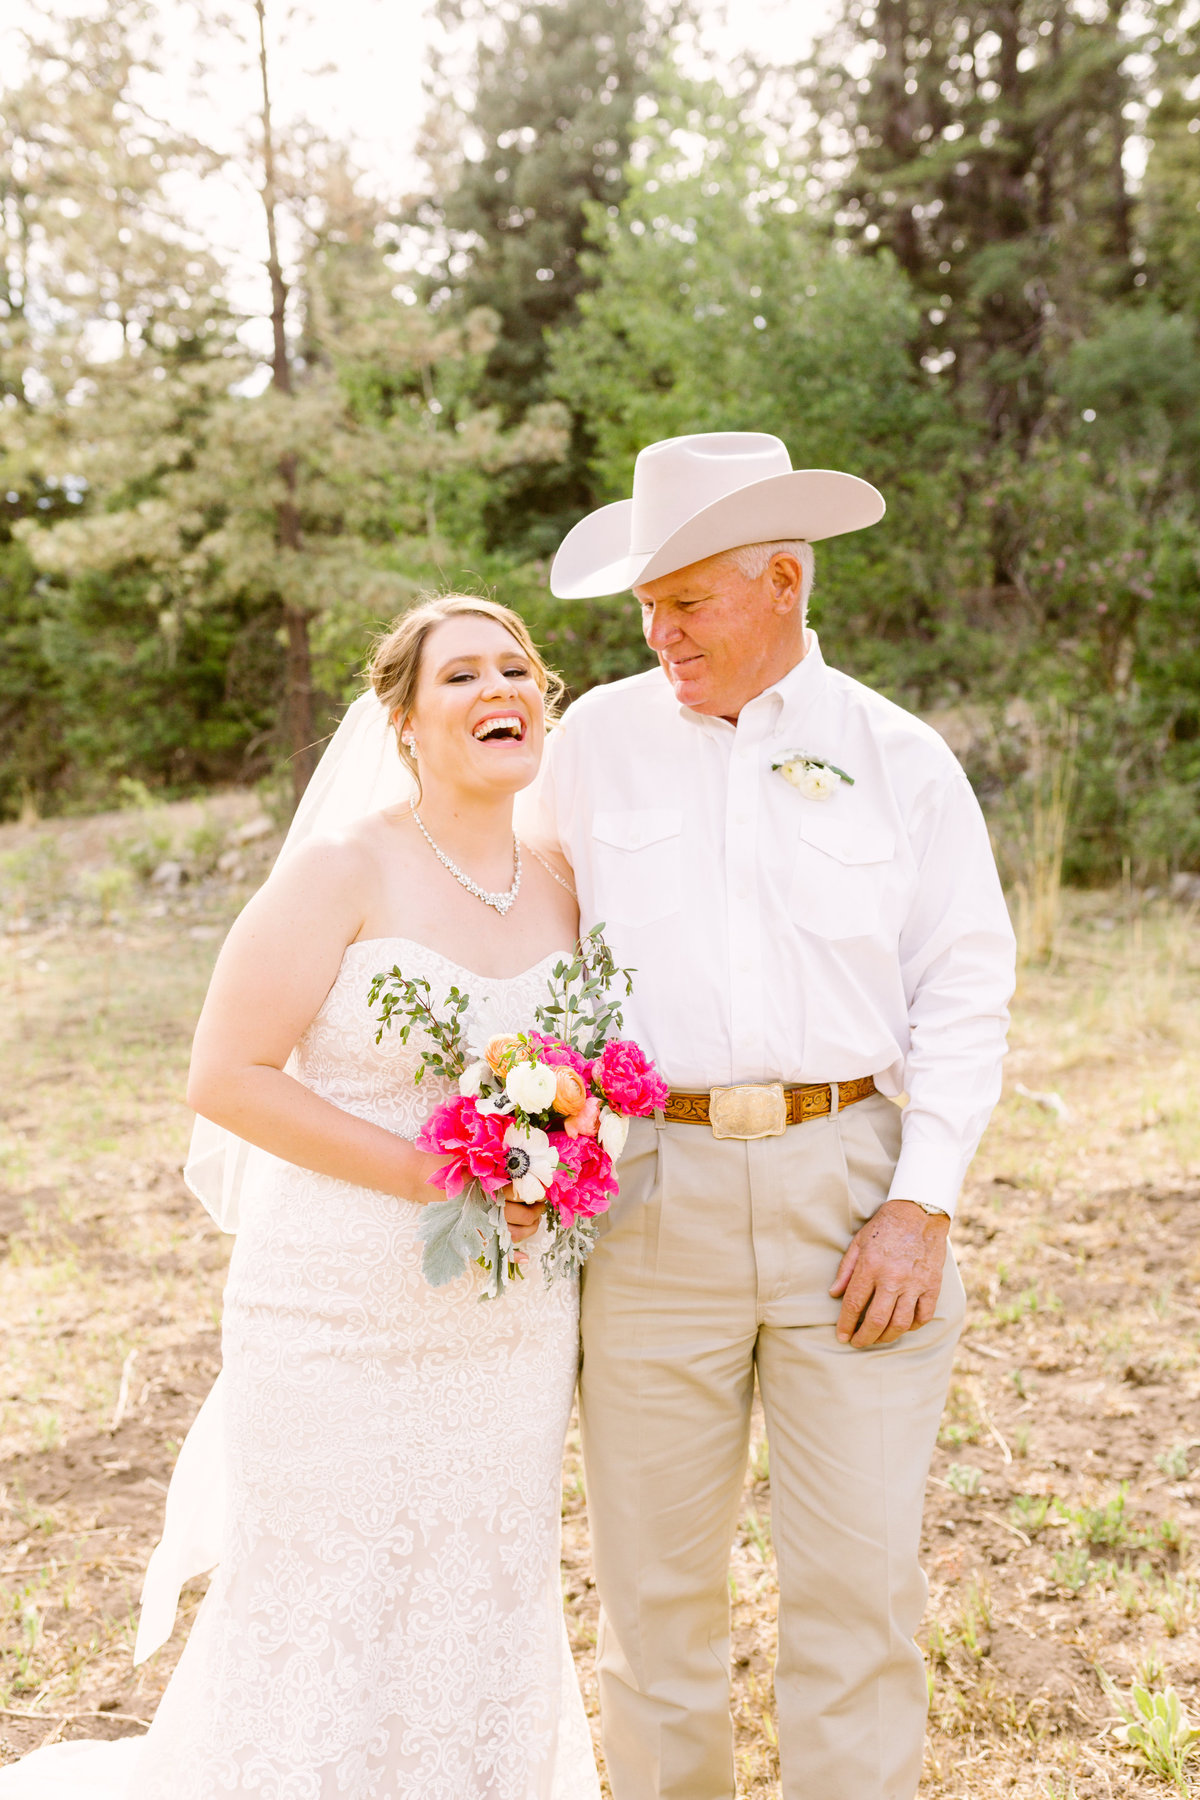 Albuquerque Outdoor Country Wedding Photographer_www.tylerbrooke.com_Kate Kauffman-3